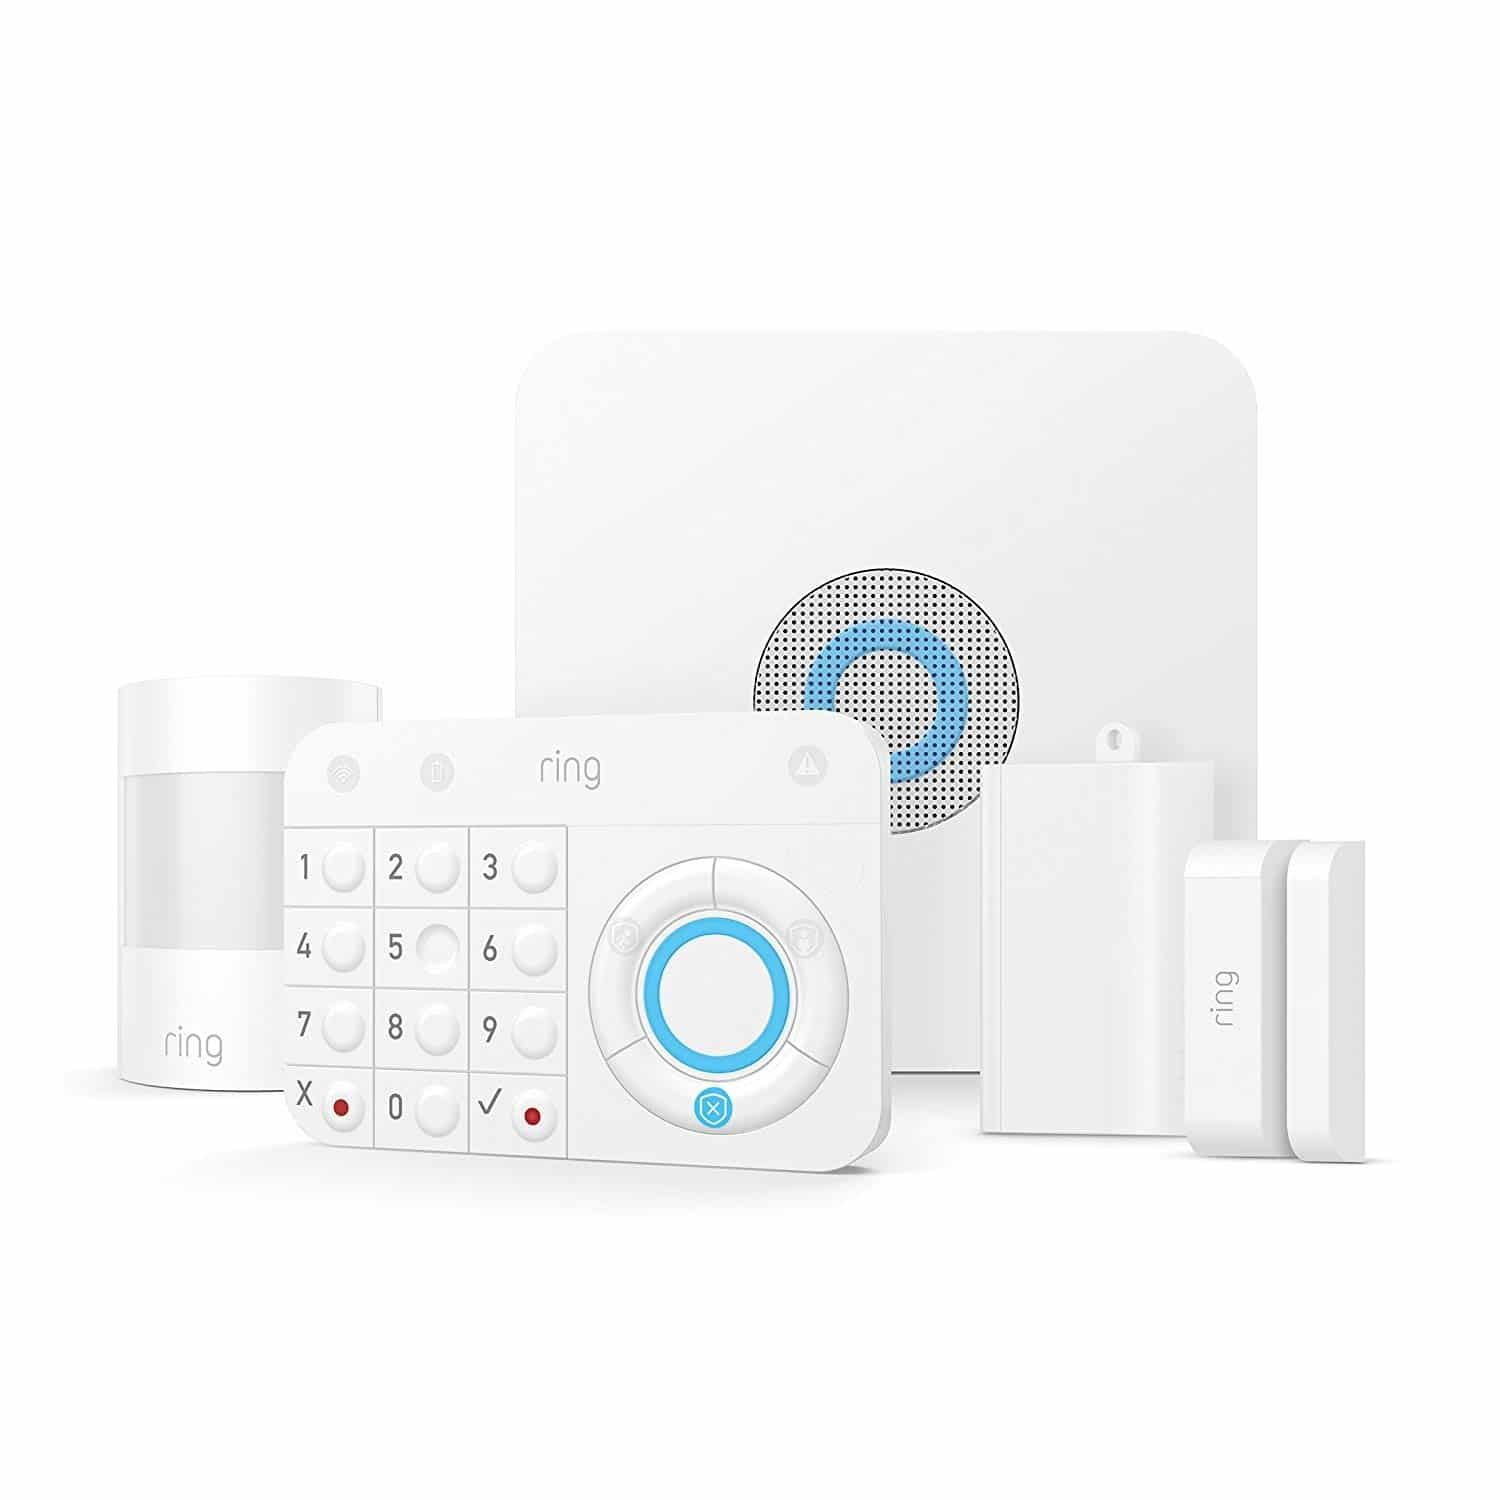 Diy Home Security Top Daily Gadgets Ring Alarm With Diy Security System Alarm Systems For Home Wireless Home Security Home Security